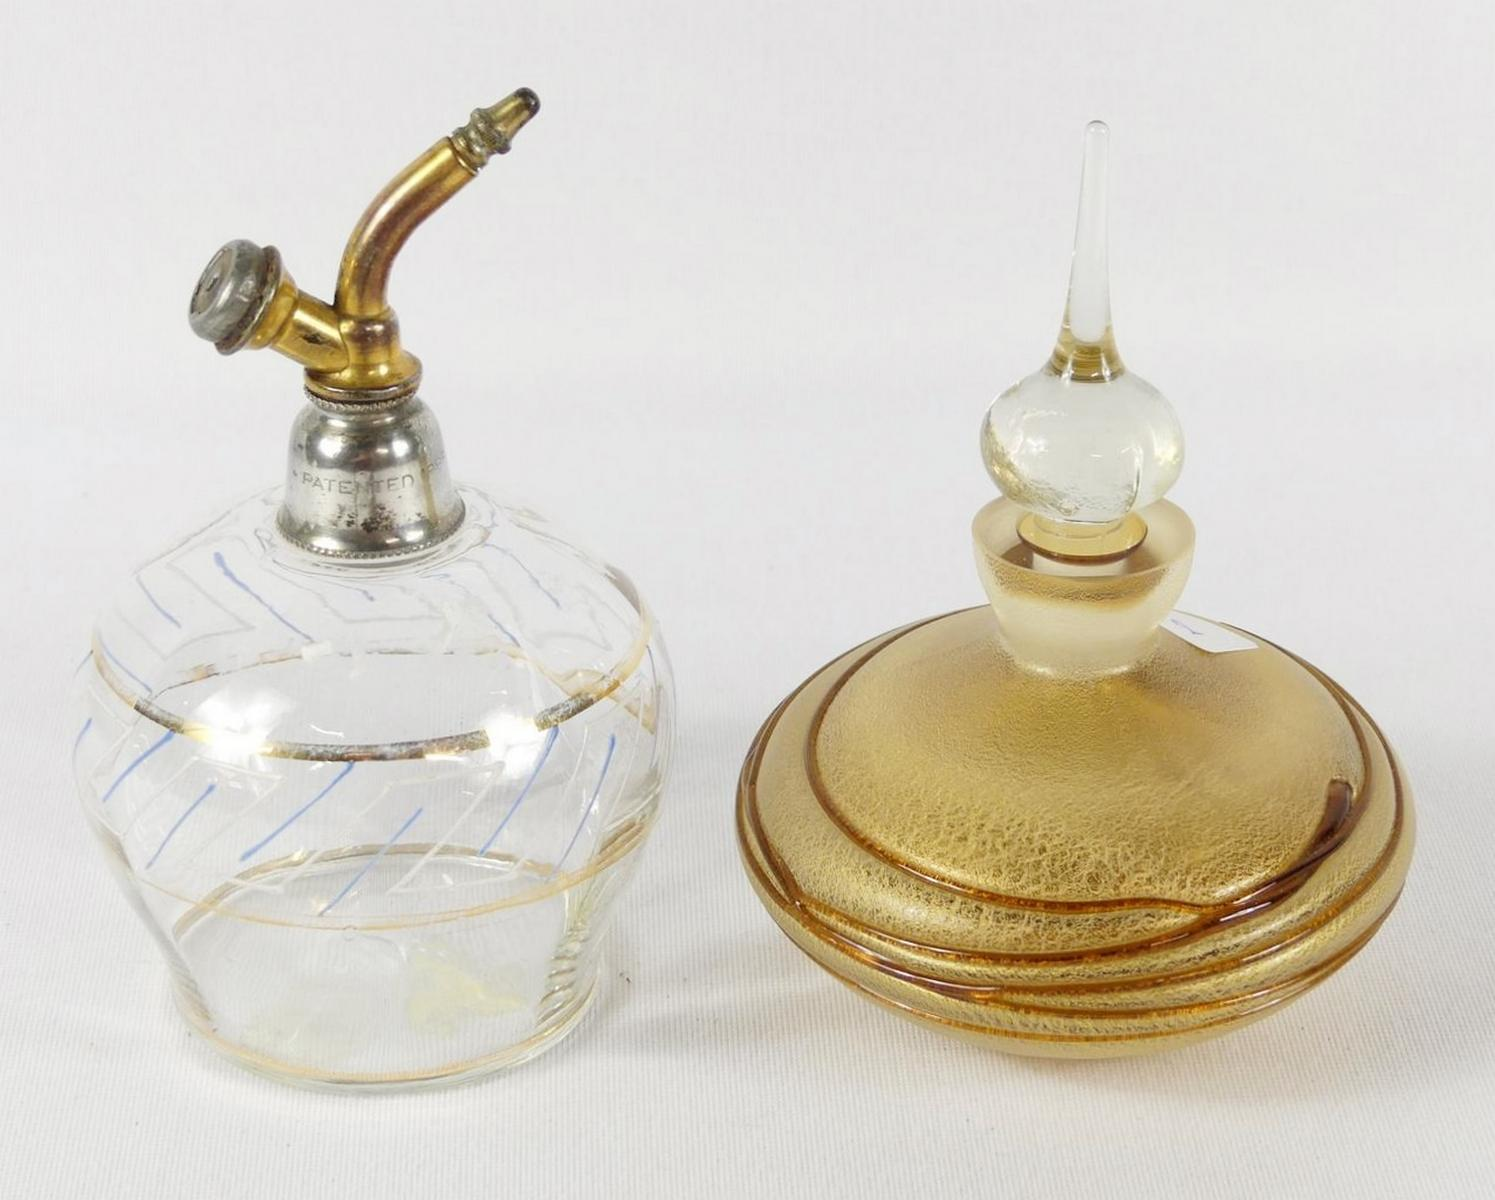 TWO SCENT BOTTLES